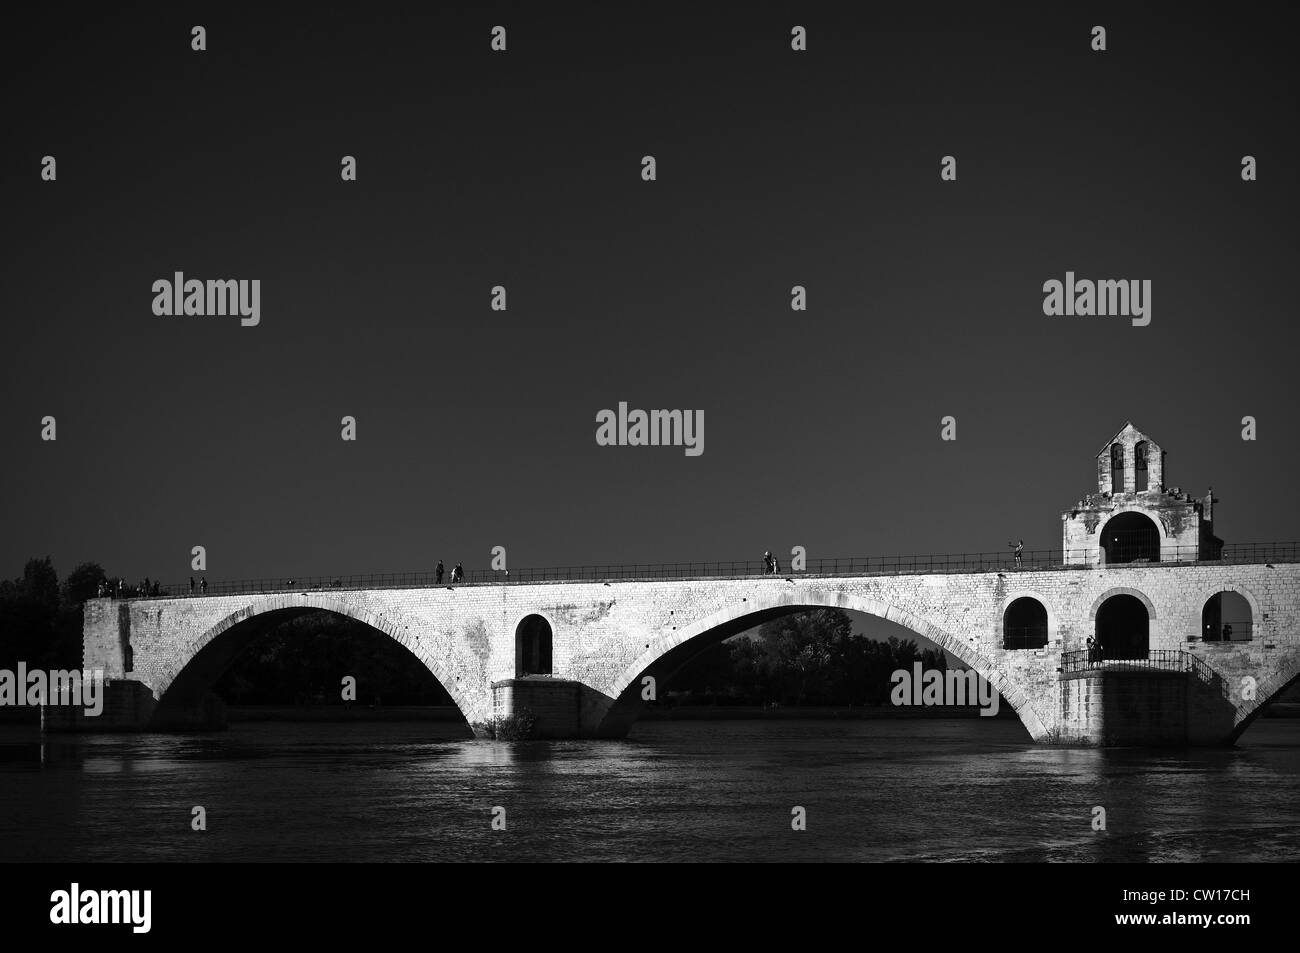 Avignon France. 2012. Saint Bénezet Bridge Pont d'Avignon - Stock Image